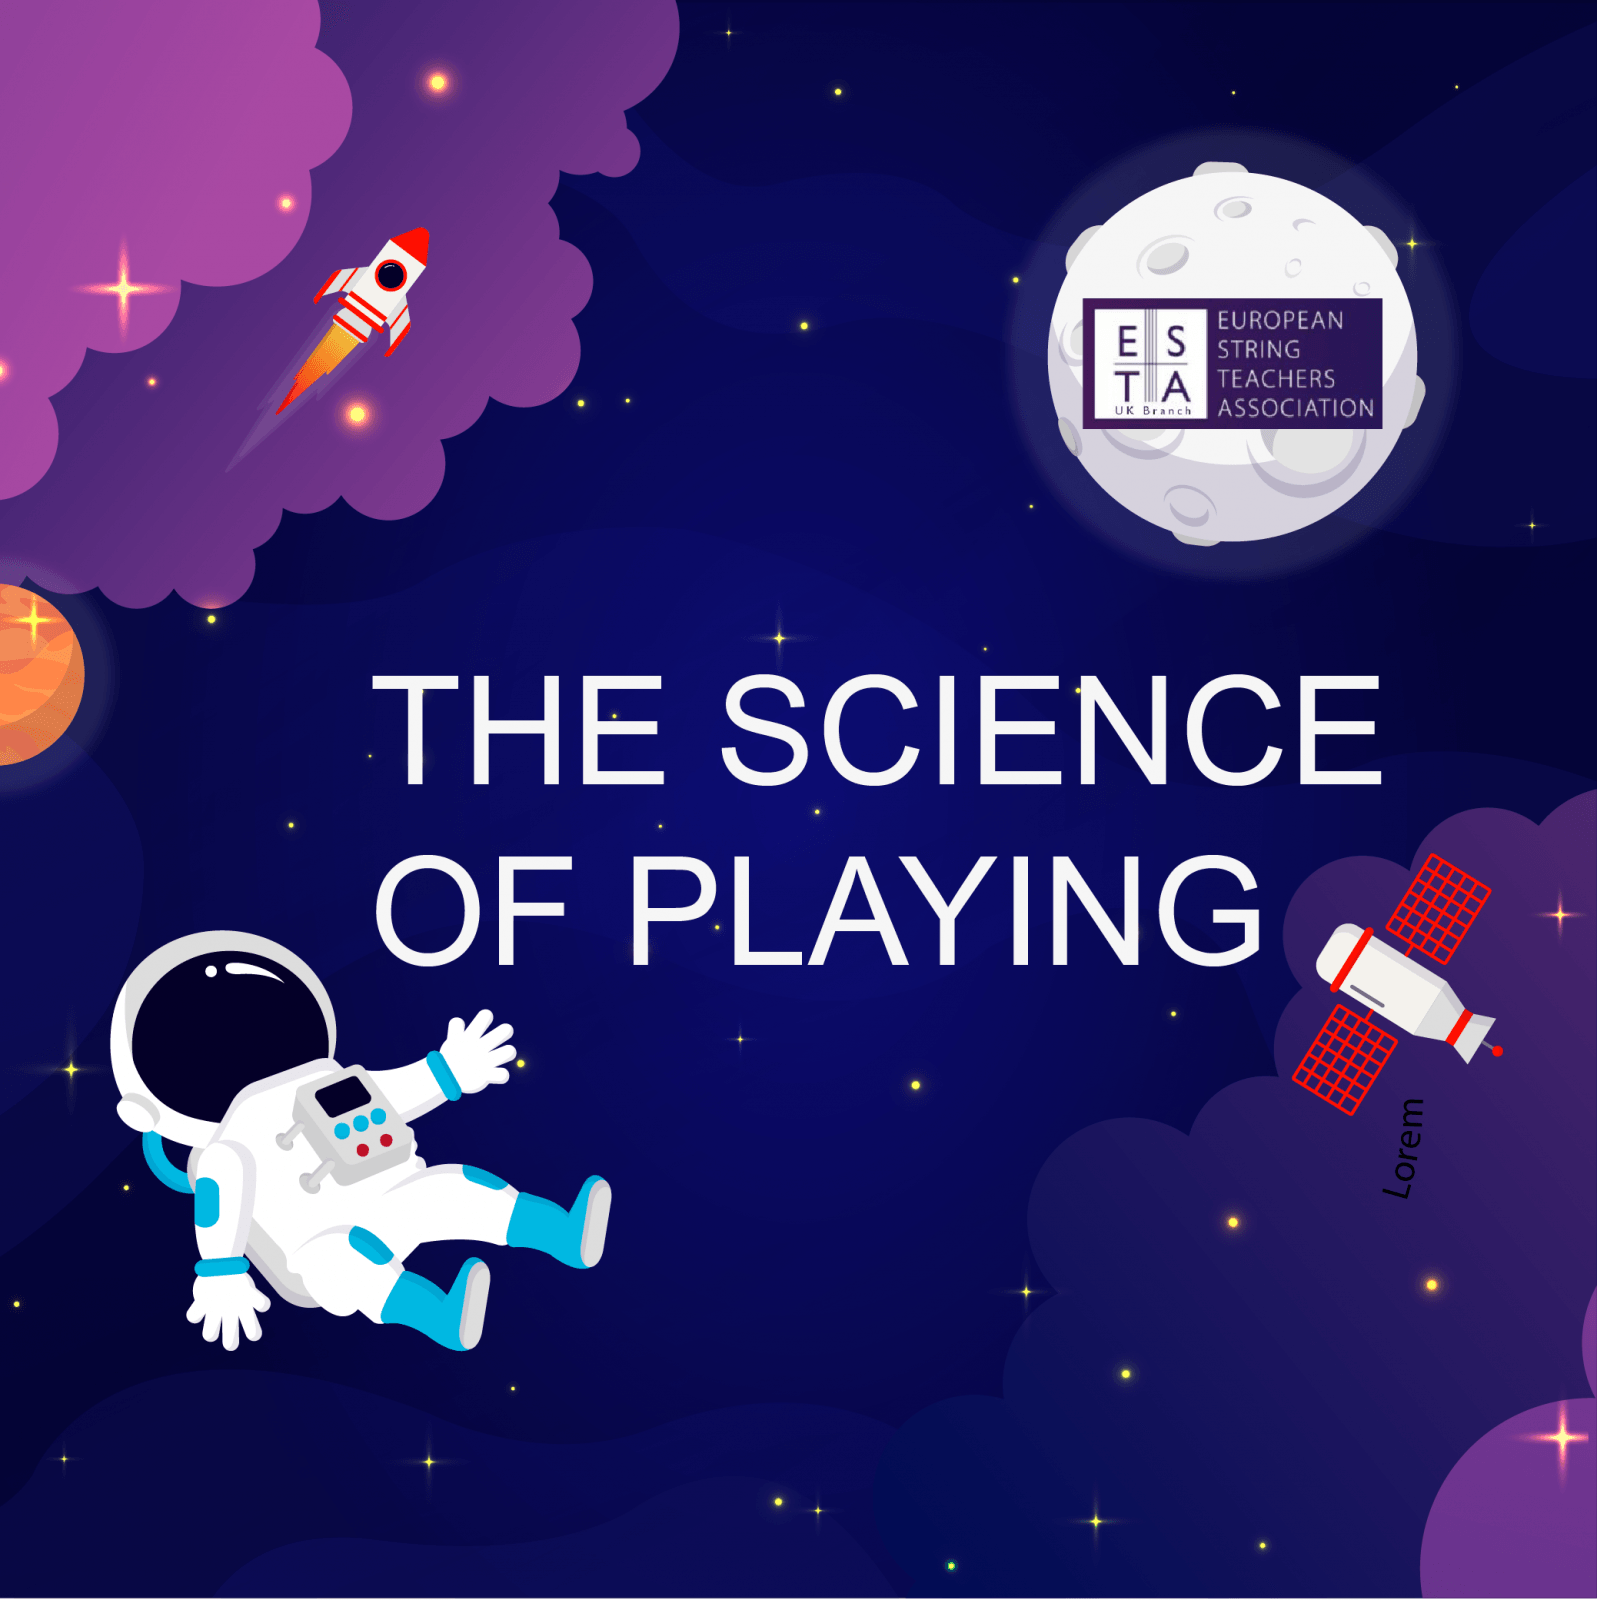 The Science of Playing